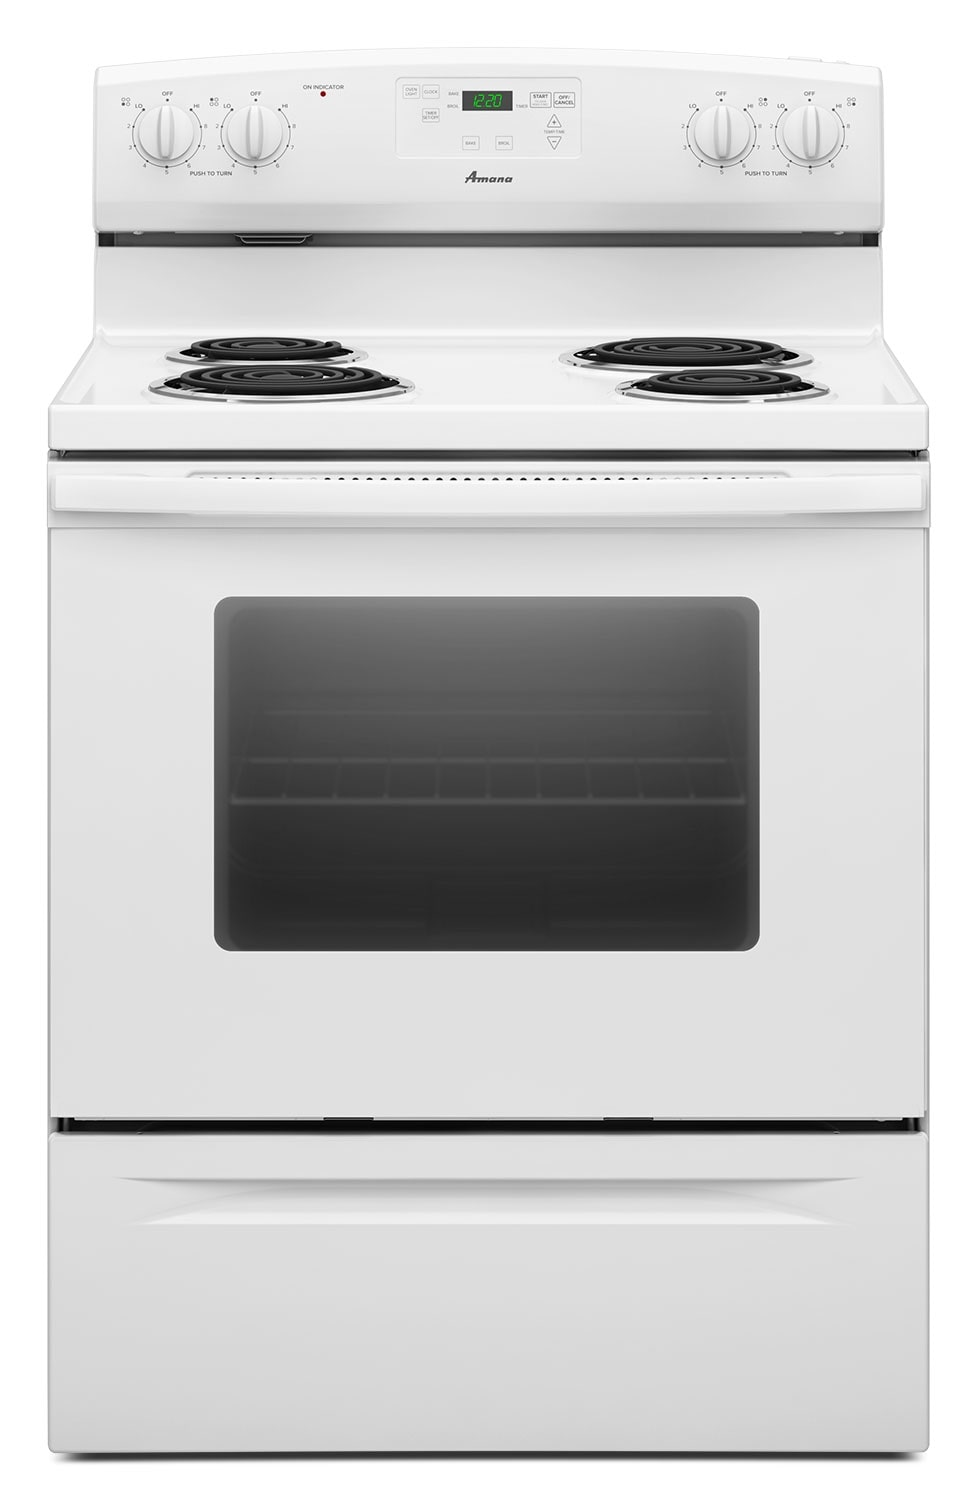 Cooking Products - Amana White Freestanding Electric Range - YACR4330BCW